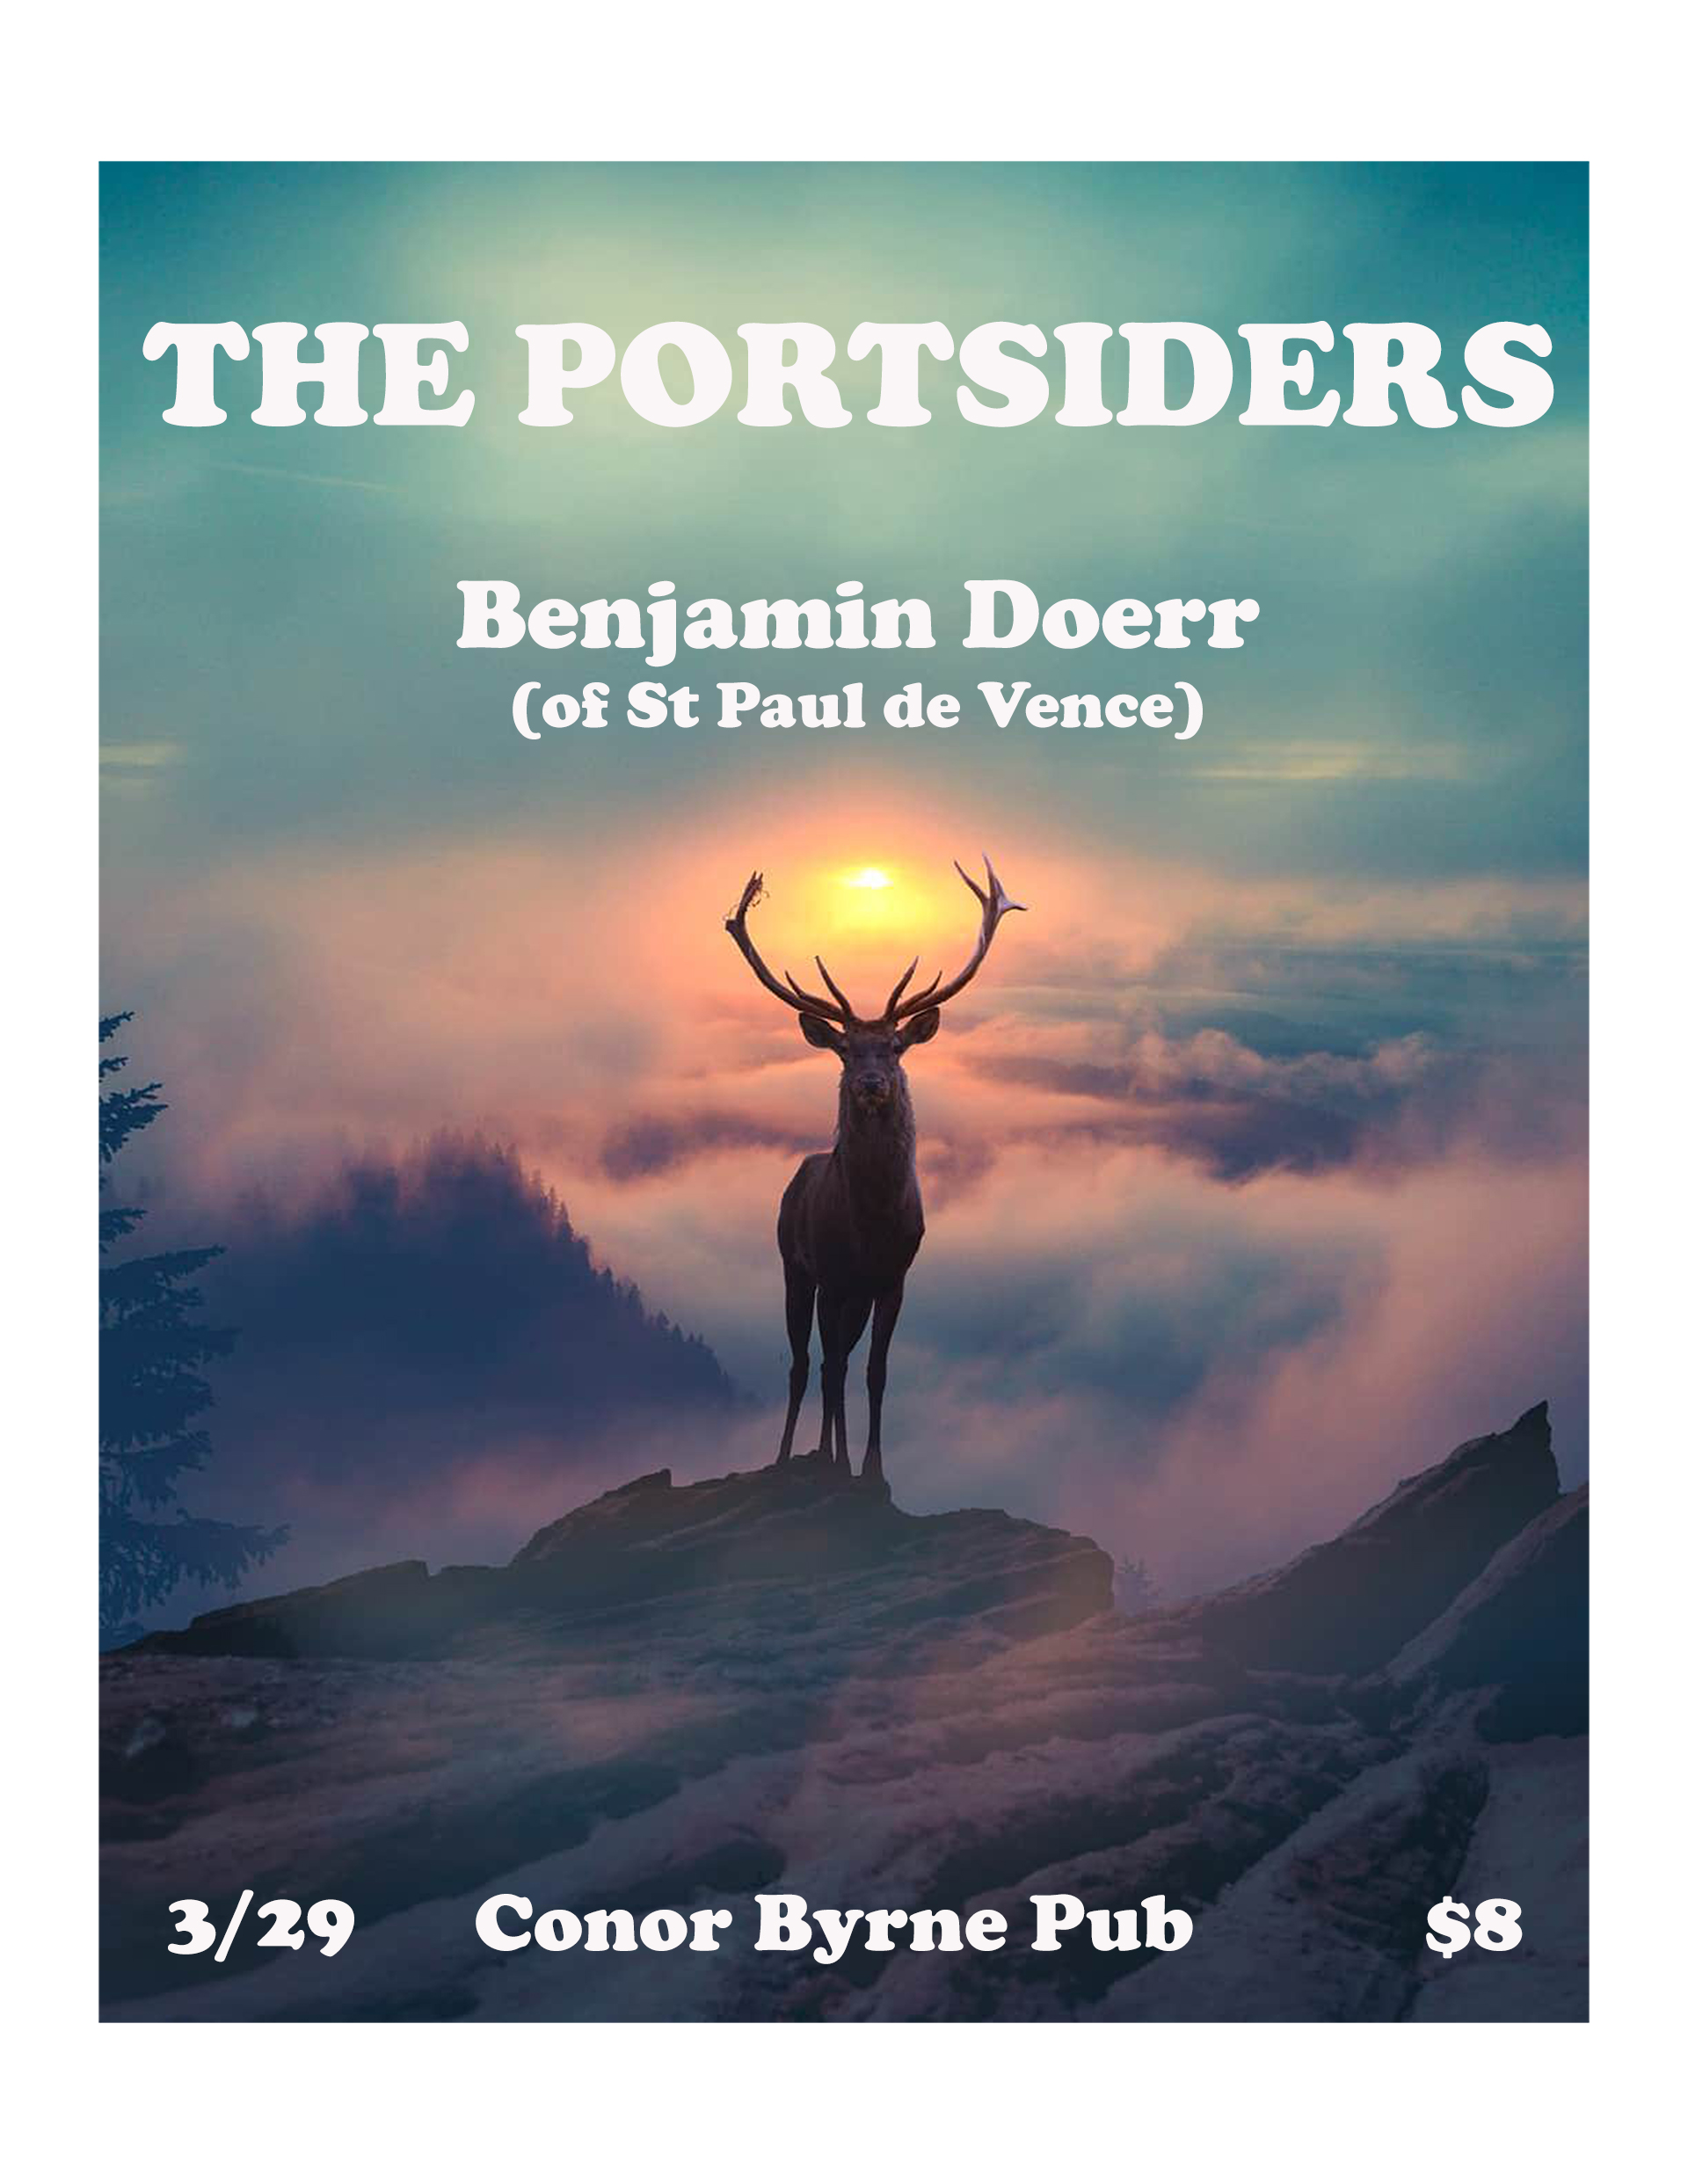 Portsiders March 29th show flyer